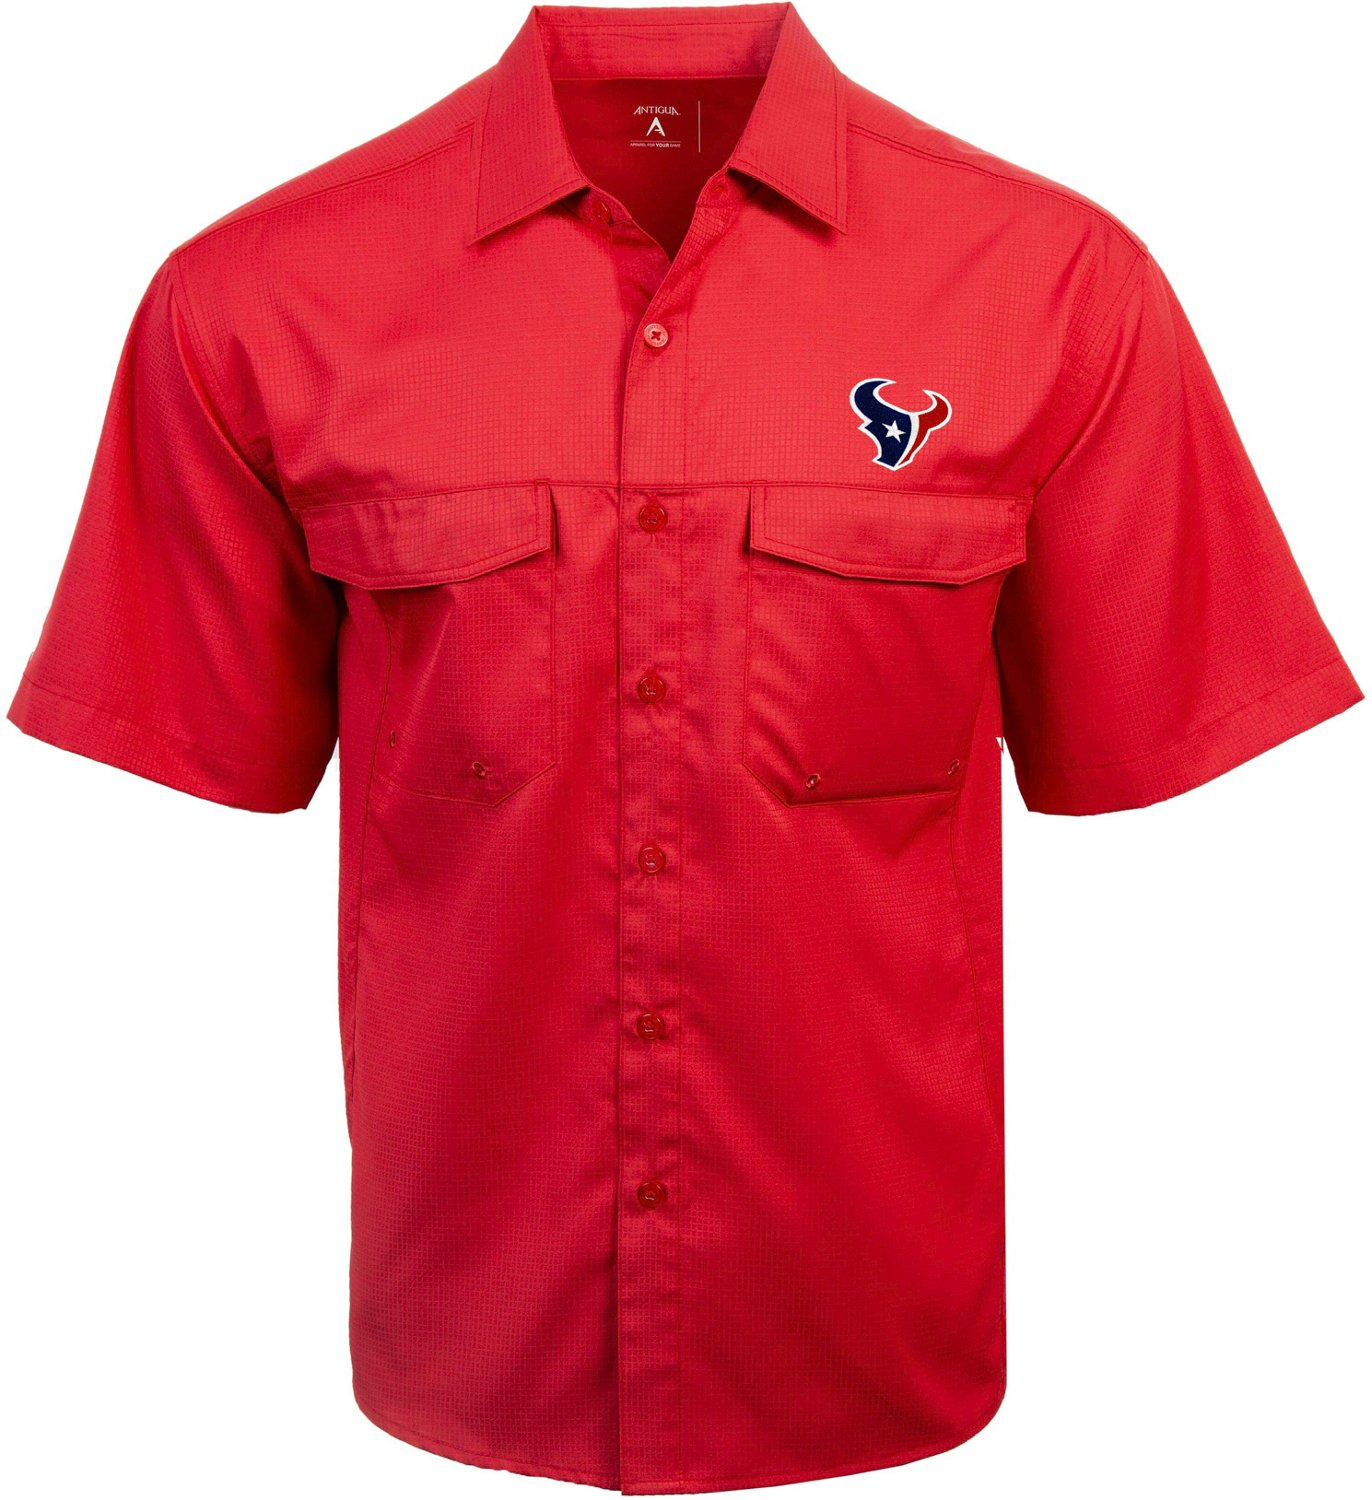 b3b29085 Display product reviews for Antigua Men's Houston Texans Game Day Woven  Fishing Shirt